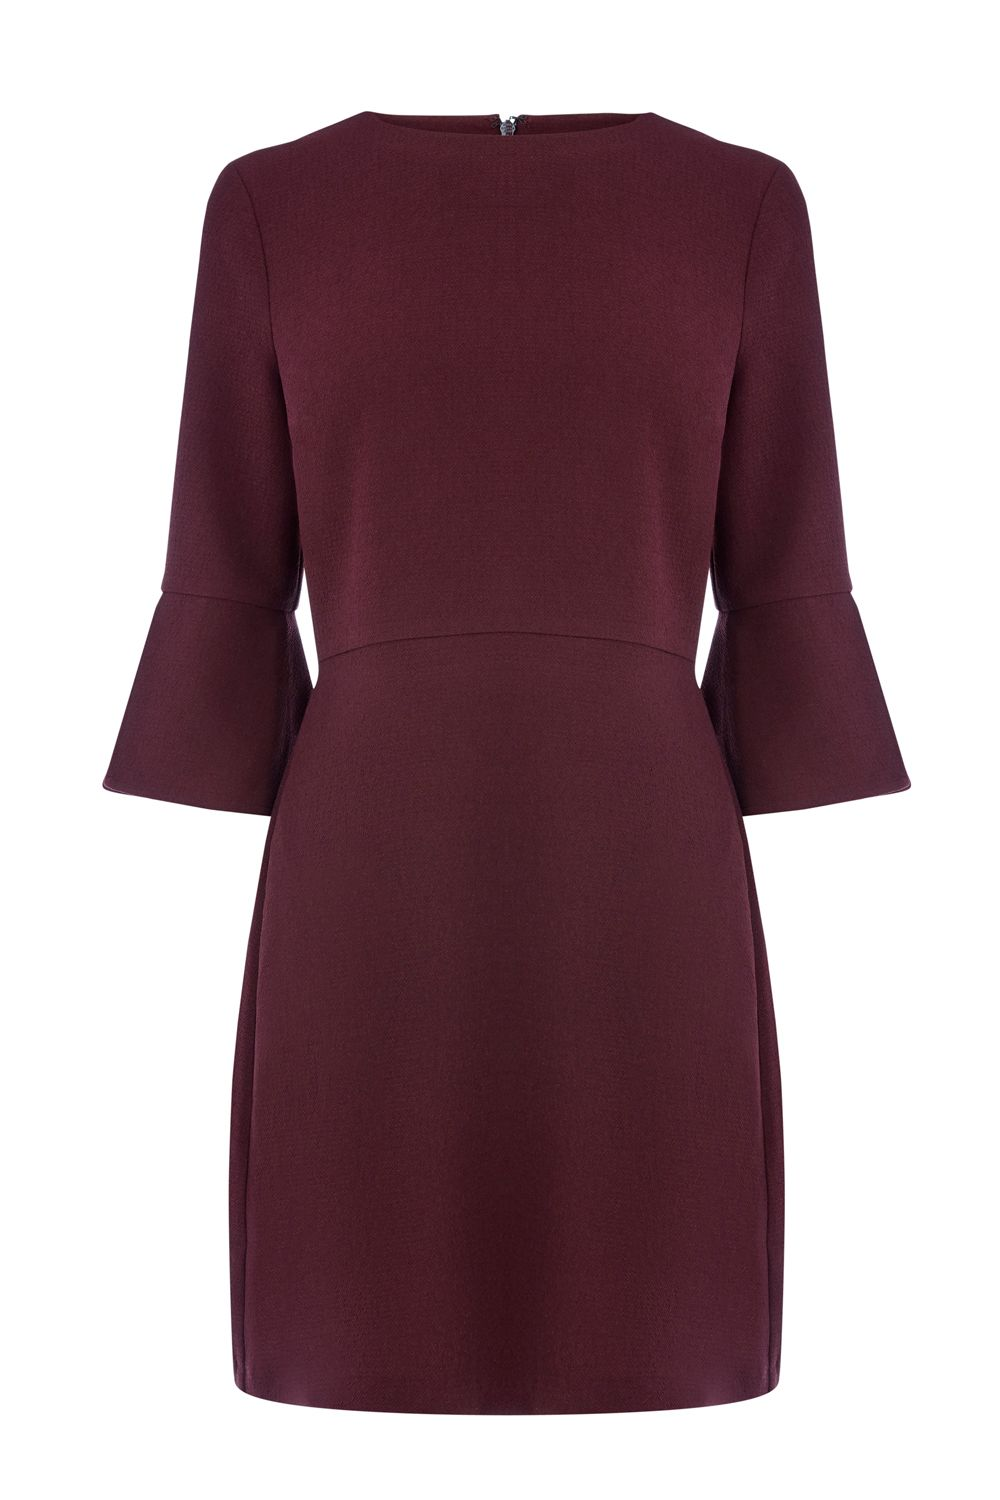 Warehouse Flute Sleeve Dress, Plum